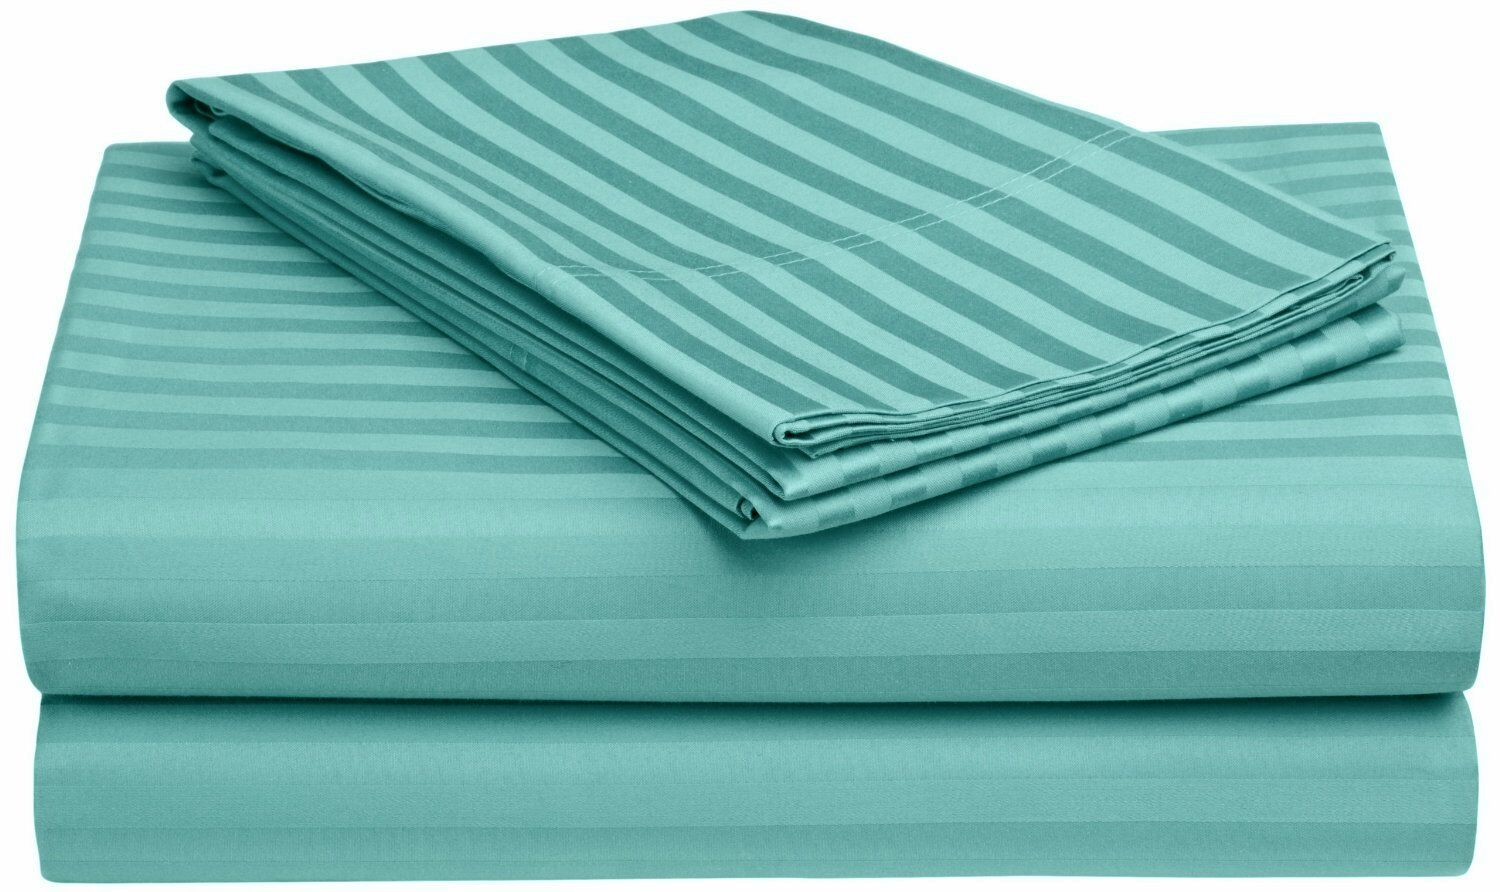 650 Thread Count Egyptian-Quality Cotton Queen Waterbed Stripe Sheet Set Size: Queen Waterbed, Color: Teal